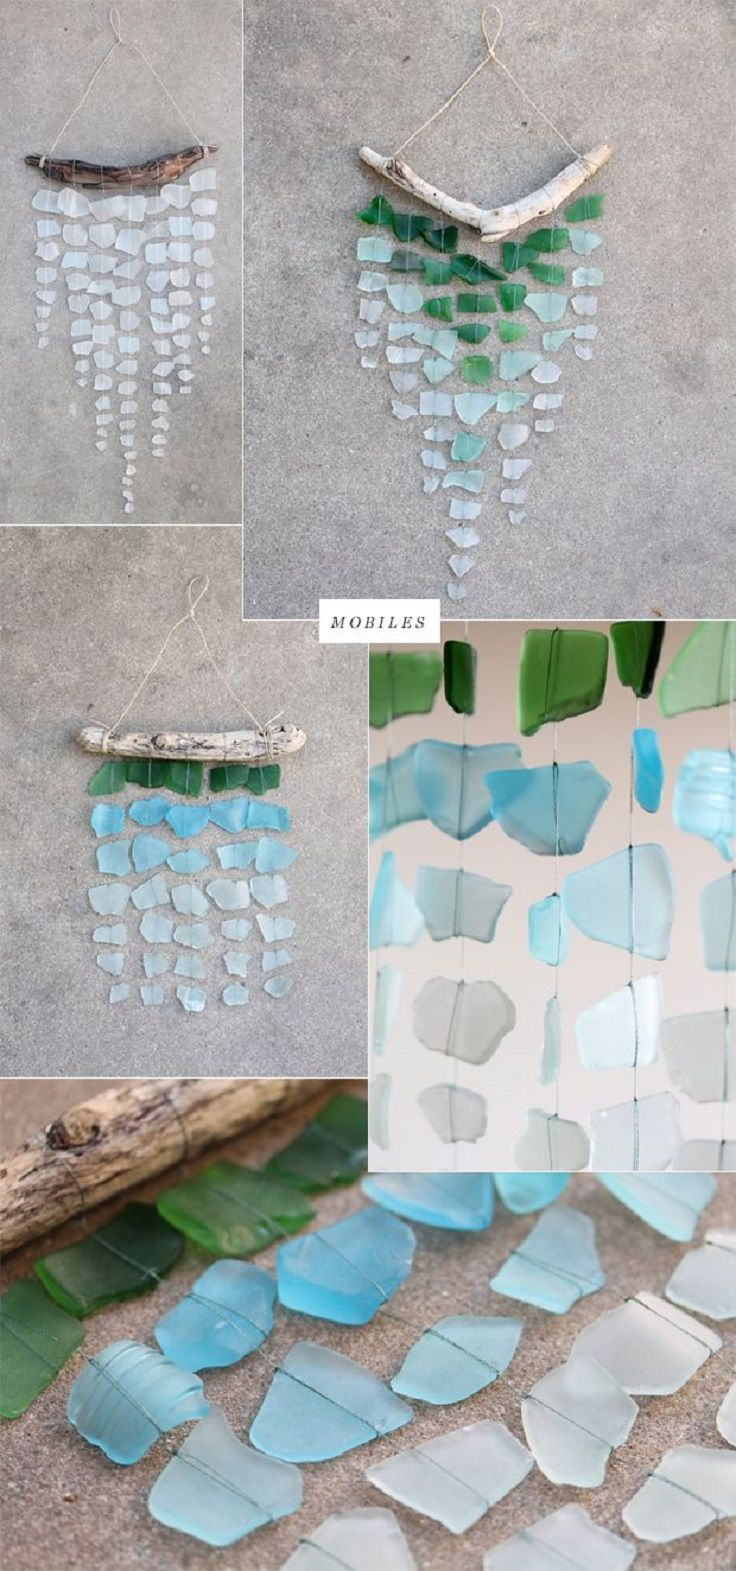 Bring your seaside vacation home with this simple sea glass mobile. Such lovely colors and a great DIY upcycling project! #DIY